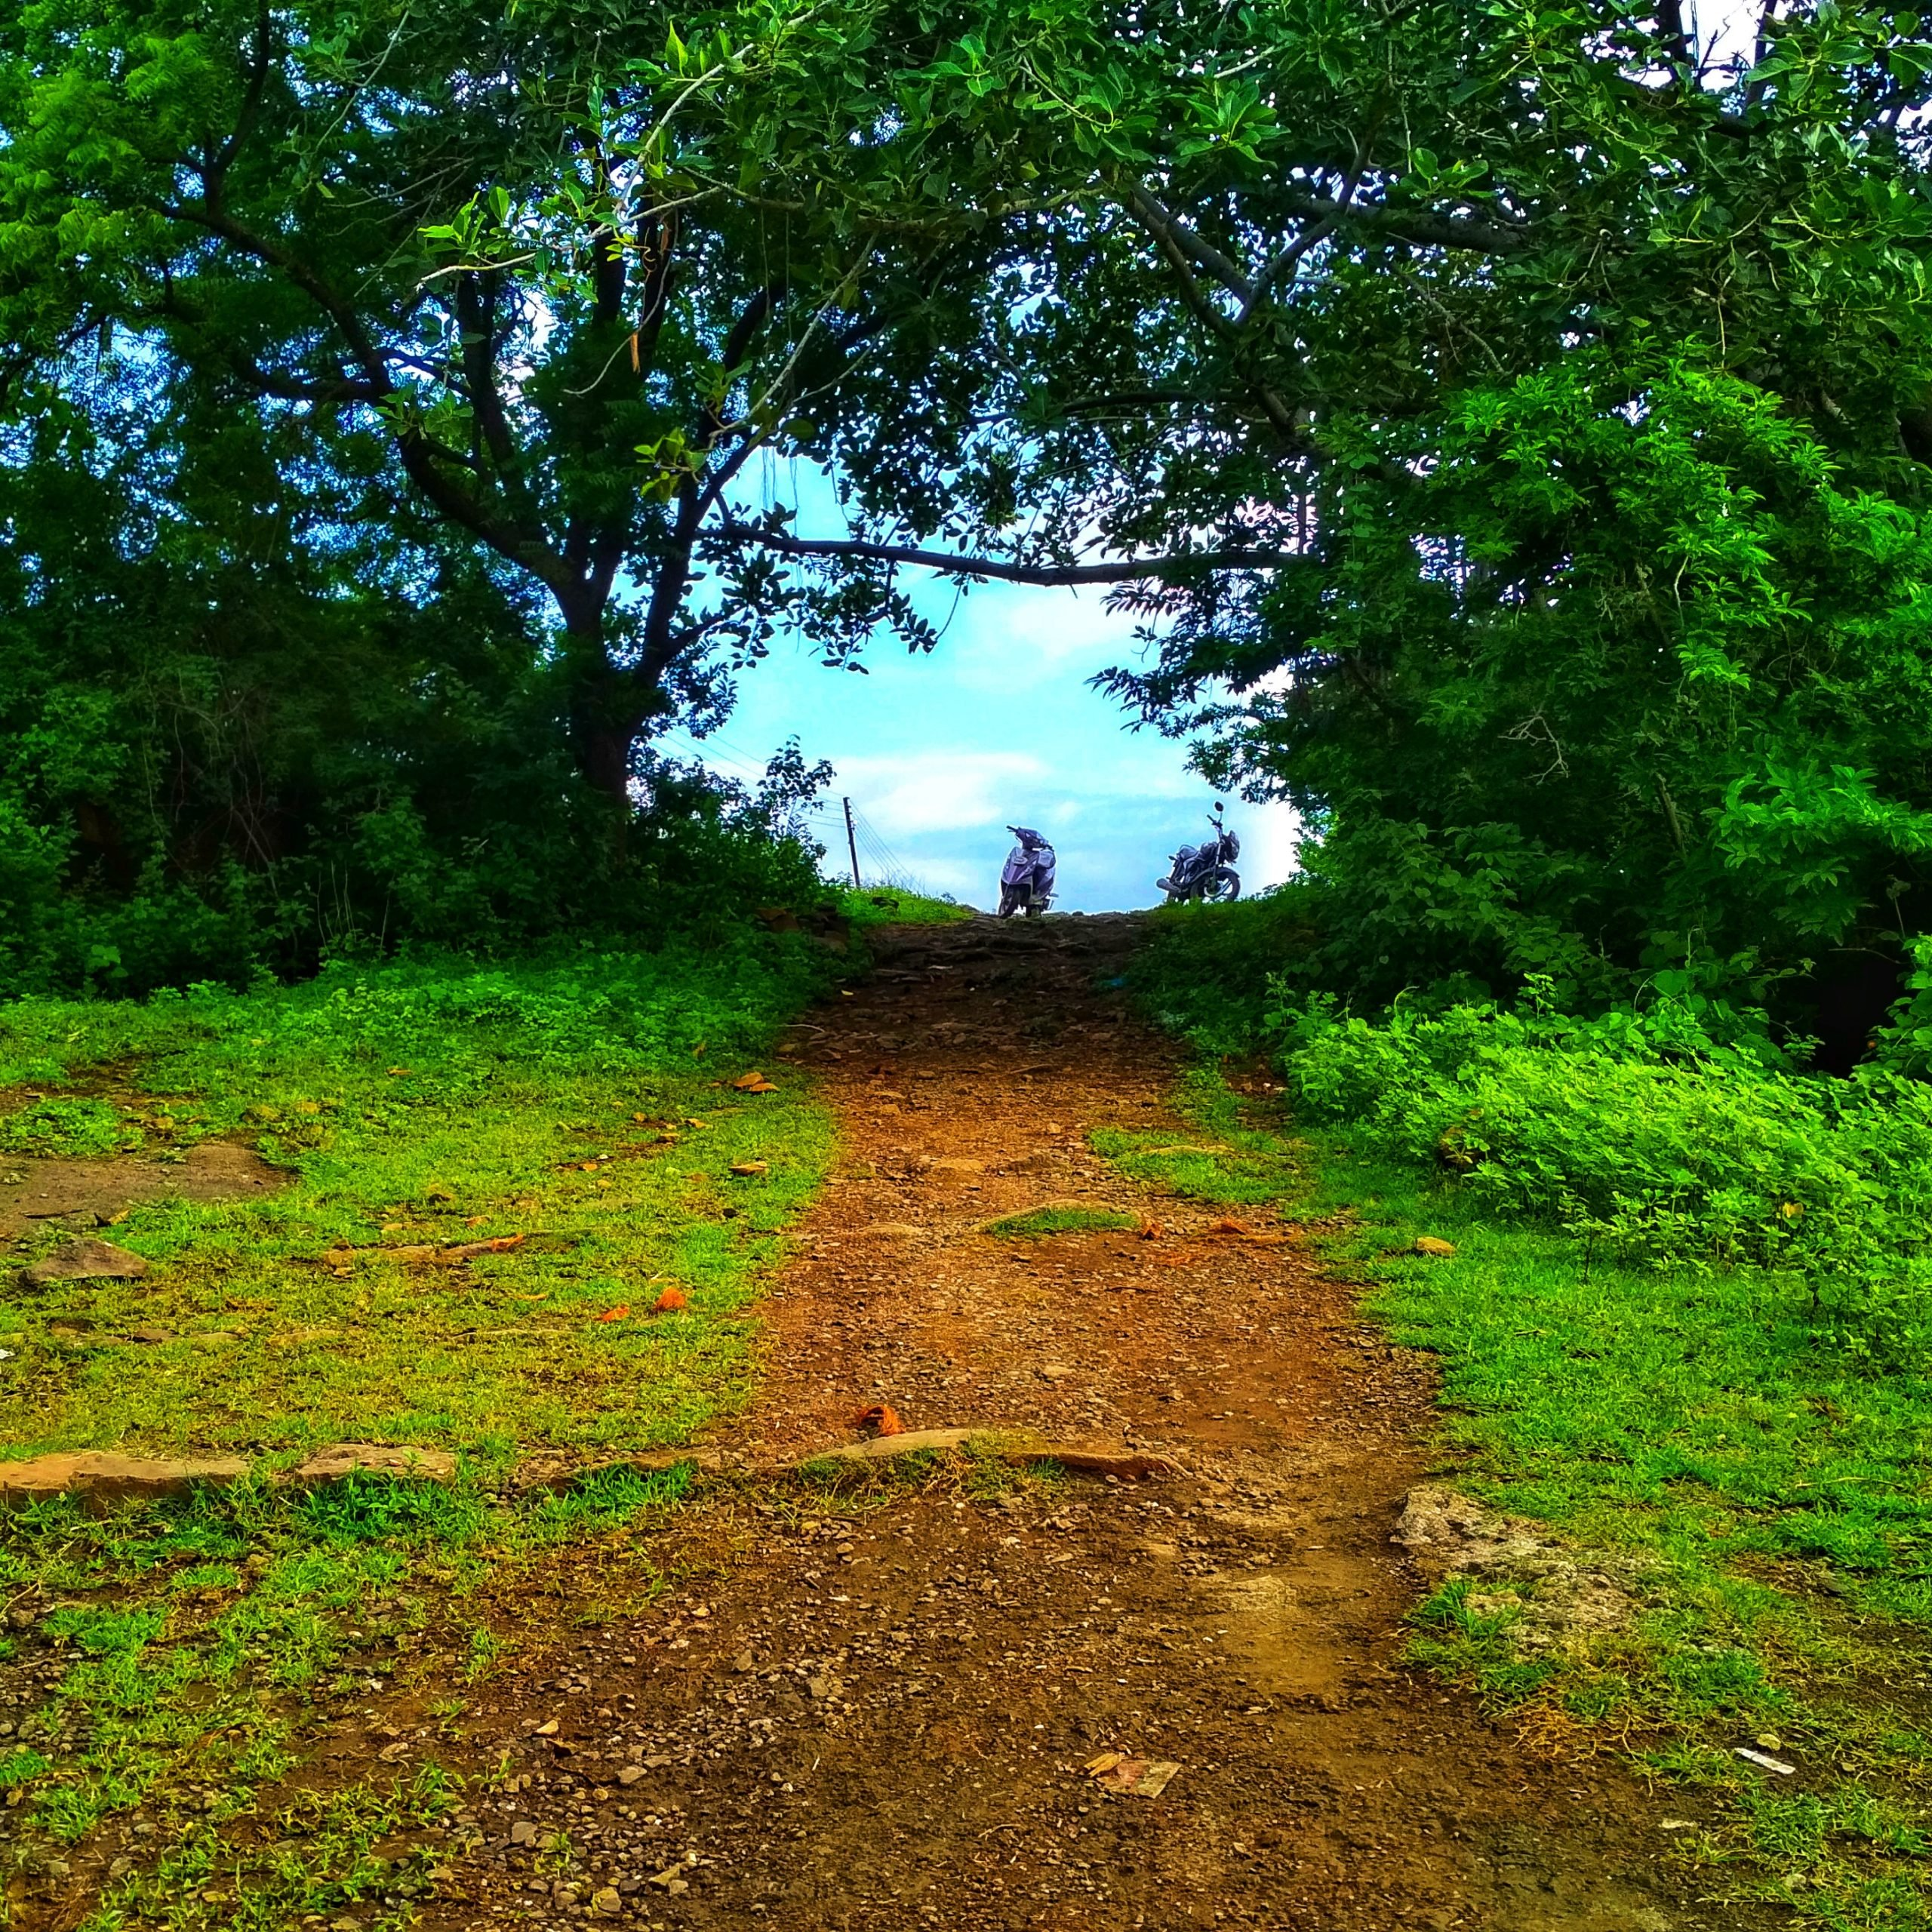 A green path and trees